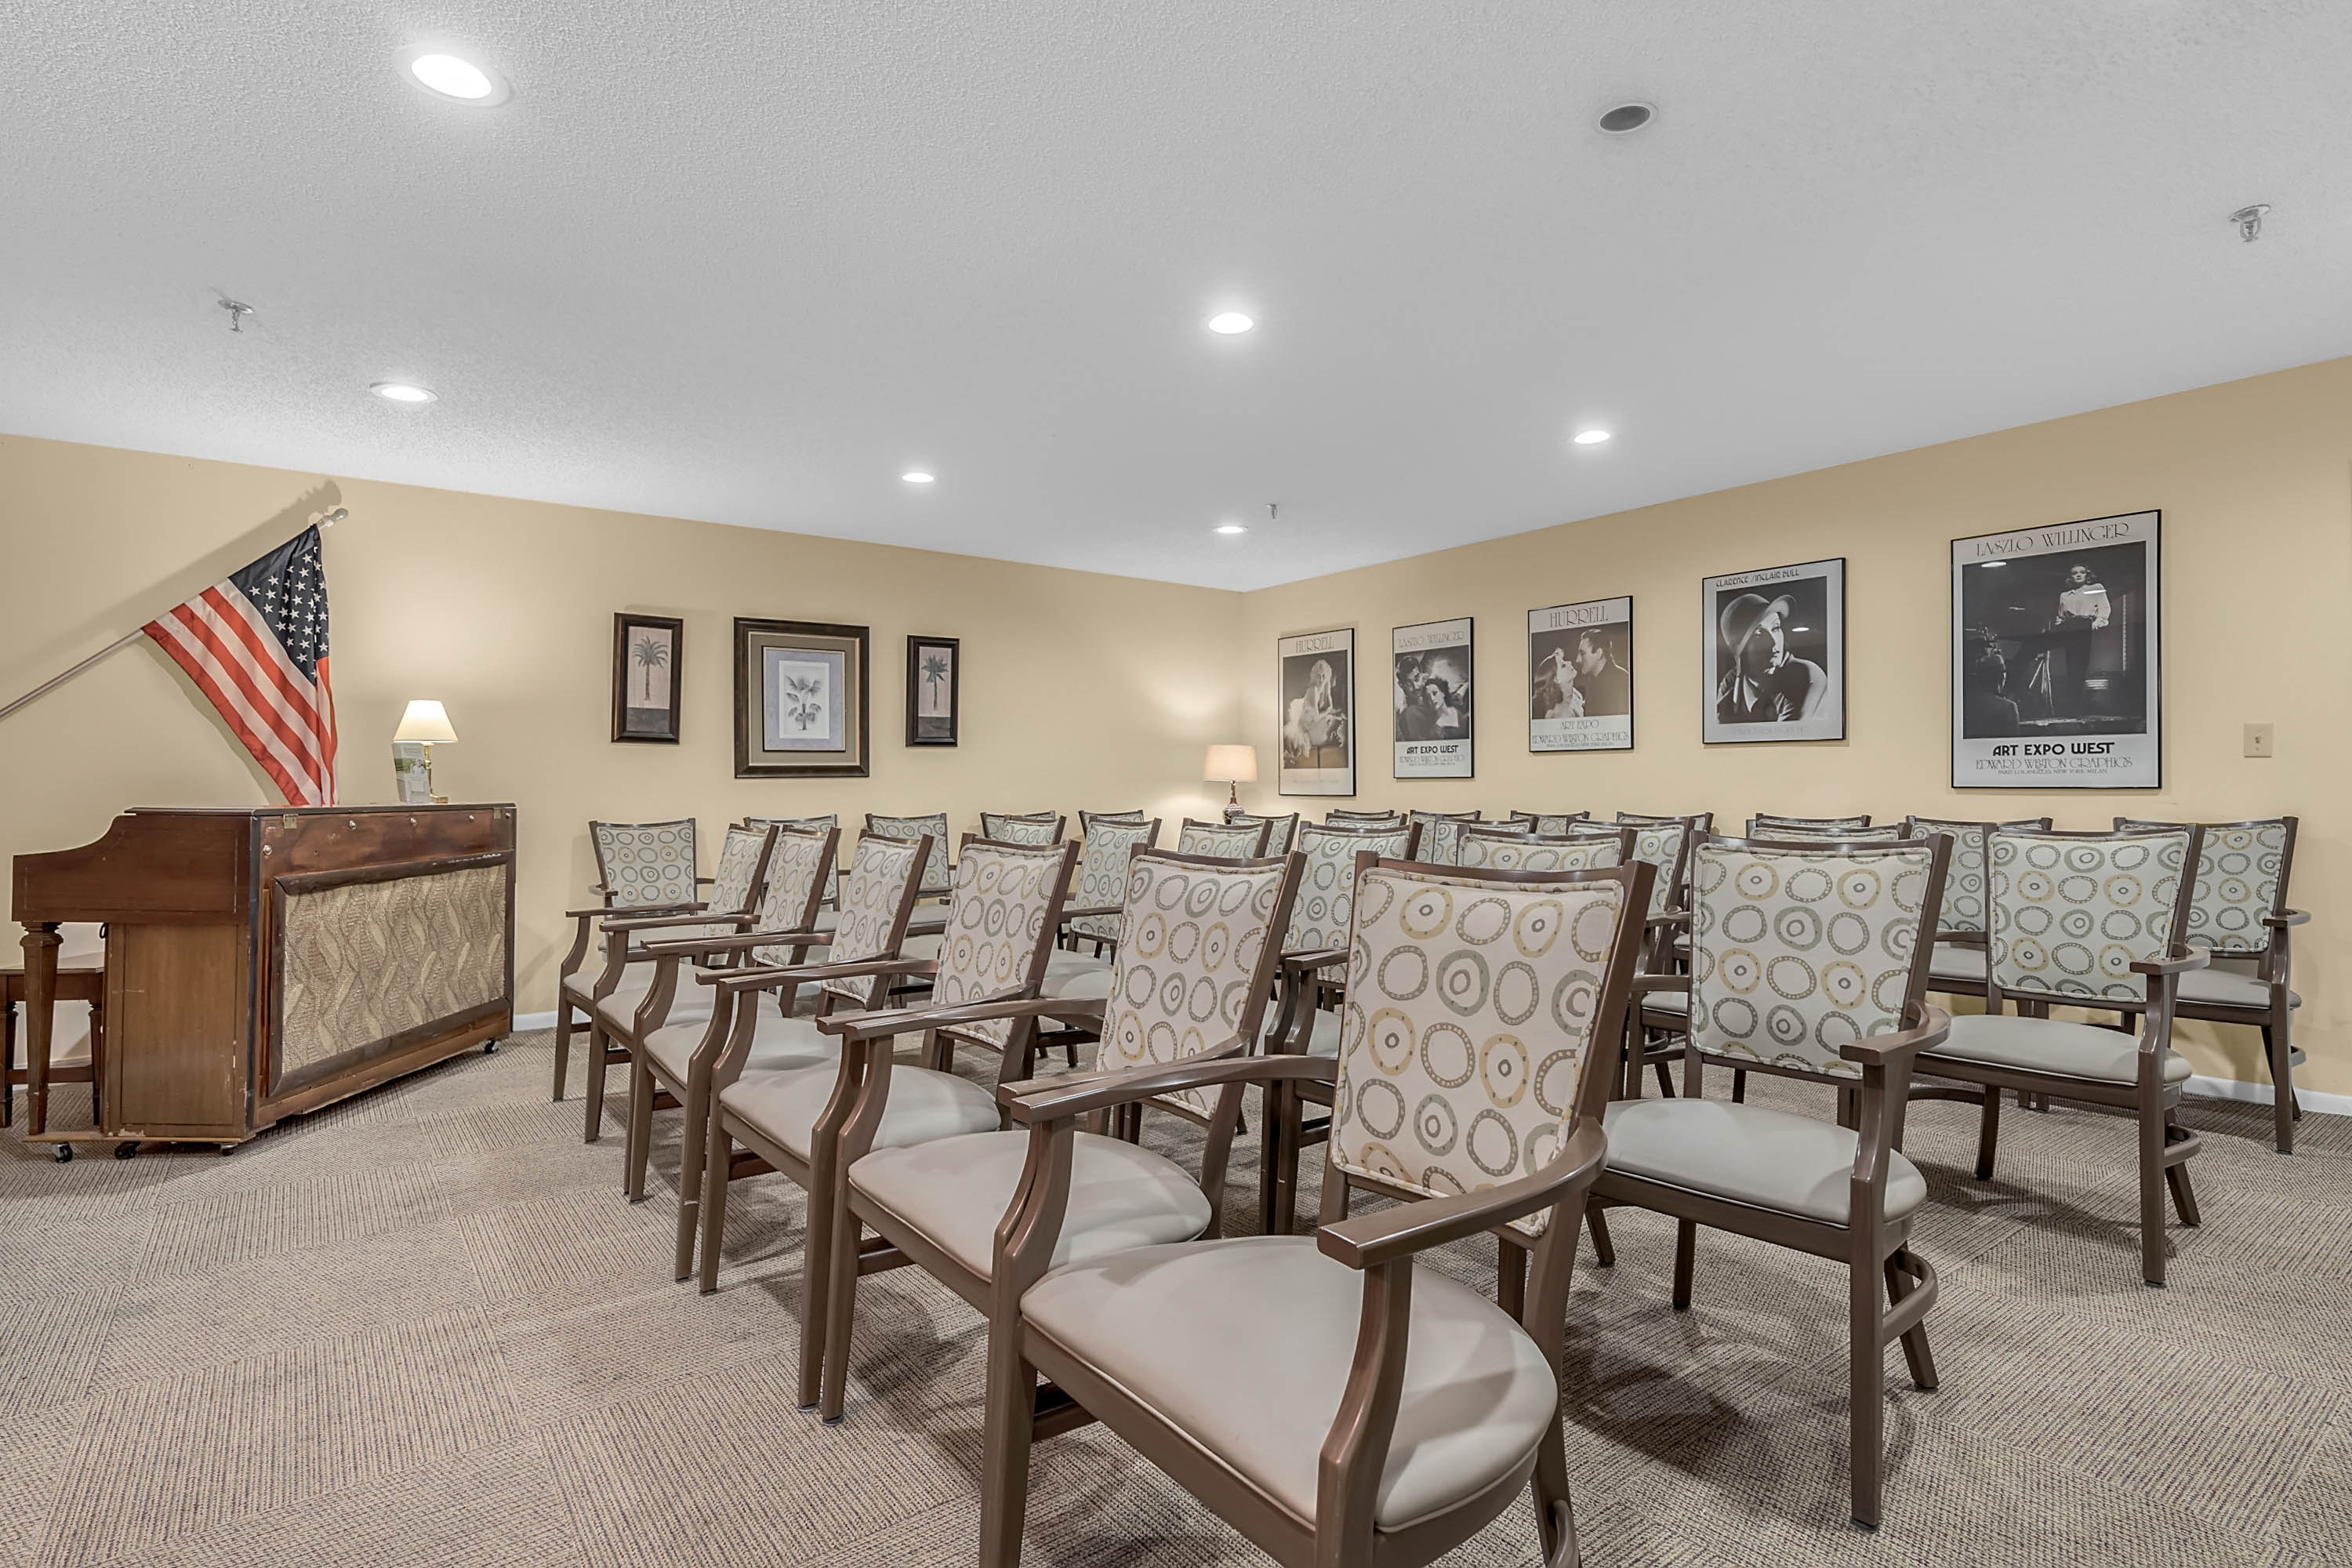 A Gathering Room at Renaissance Retirement Center in Sanford, Florida